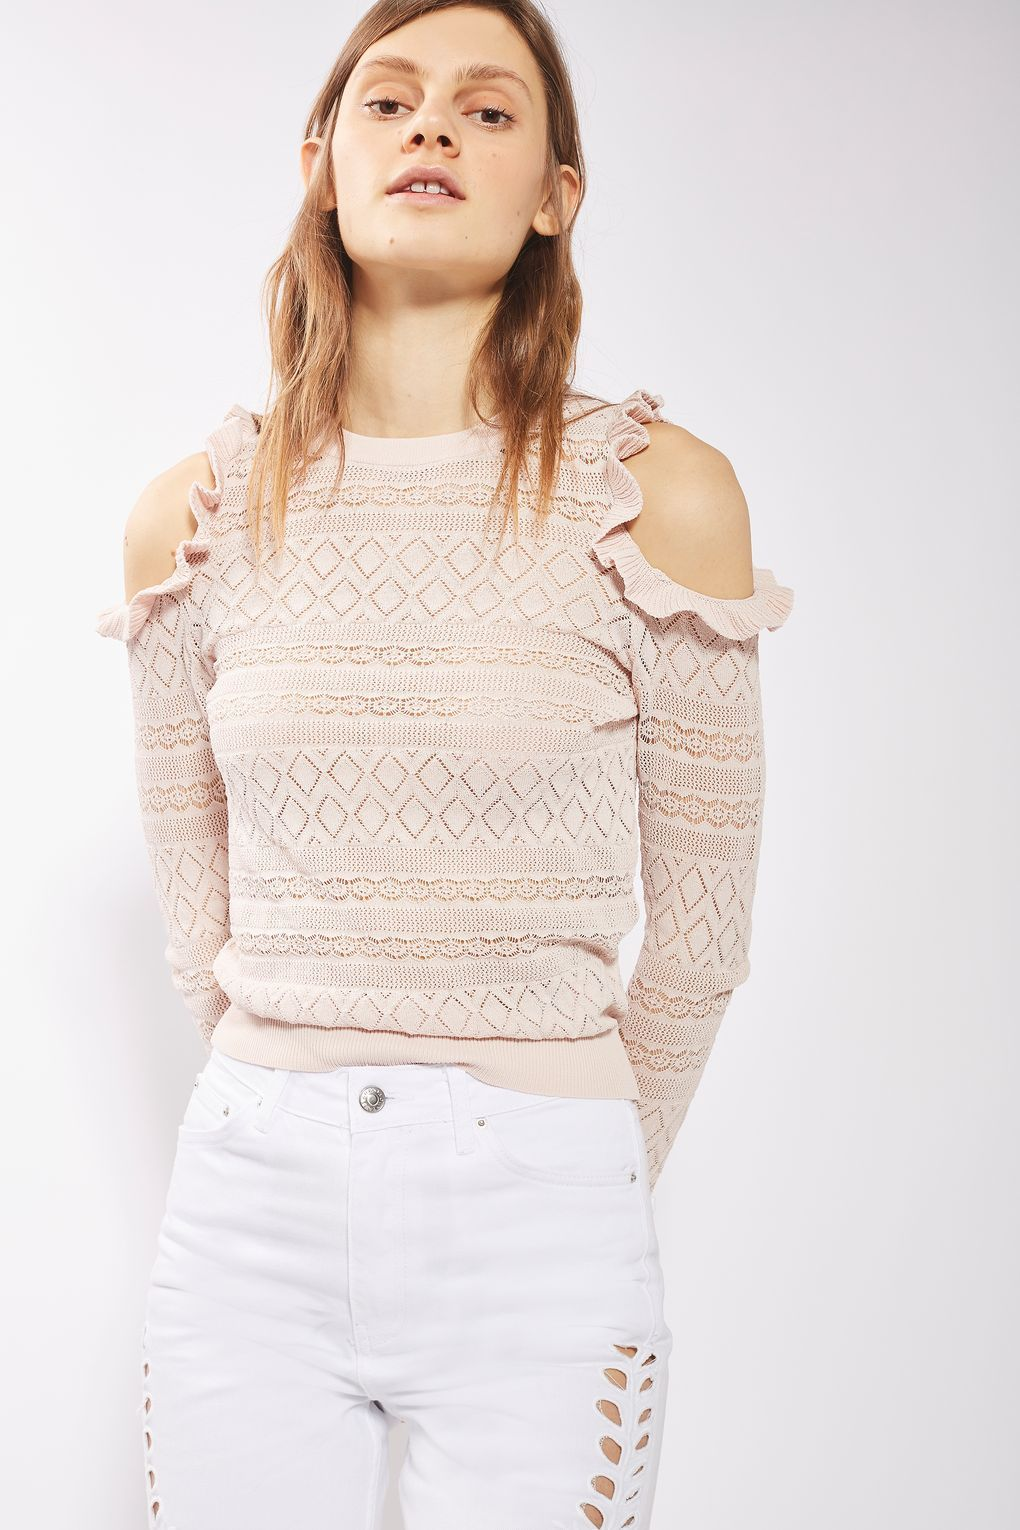 b2faaea00e5bc Pointelle Frill Cold Shoulder Knitted Top - New In- Topshop Europe